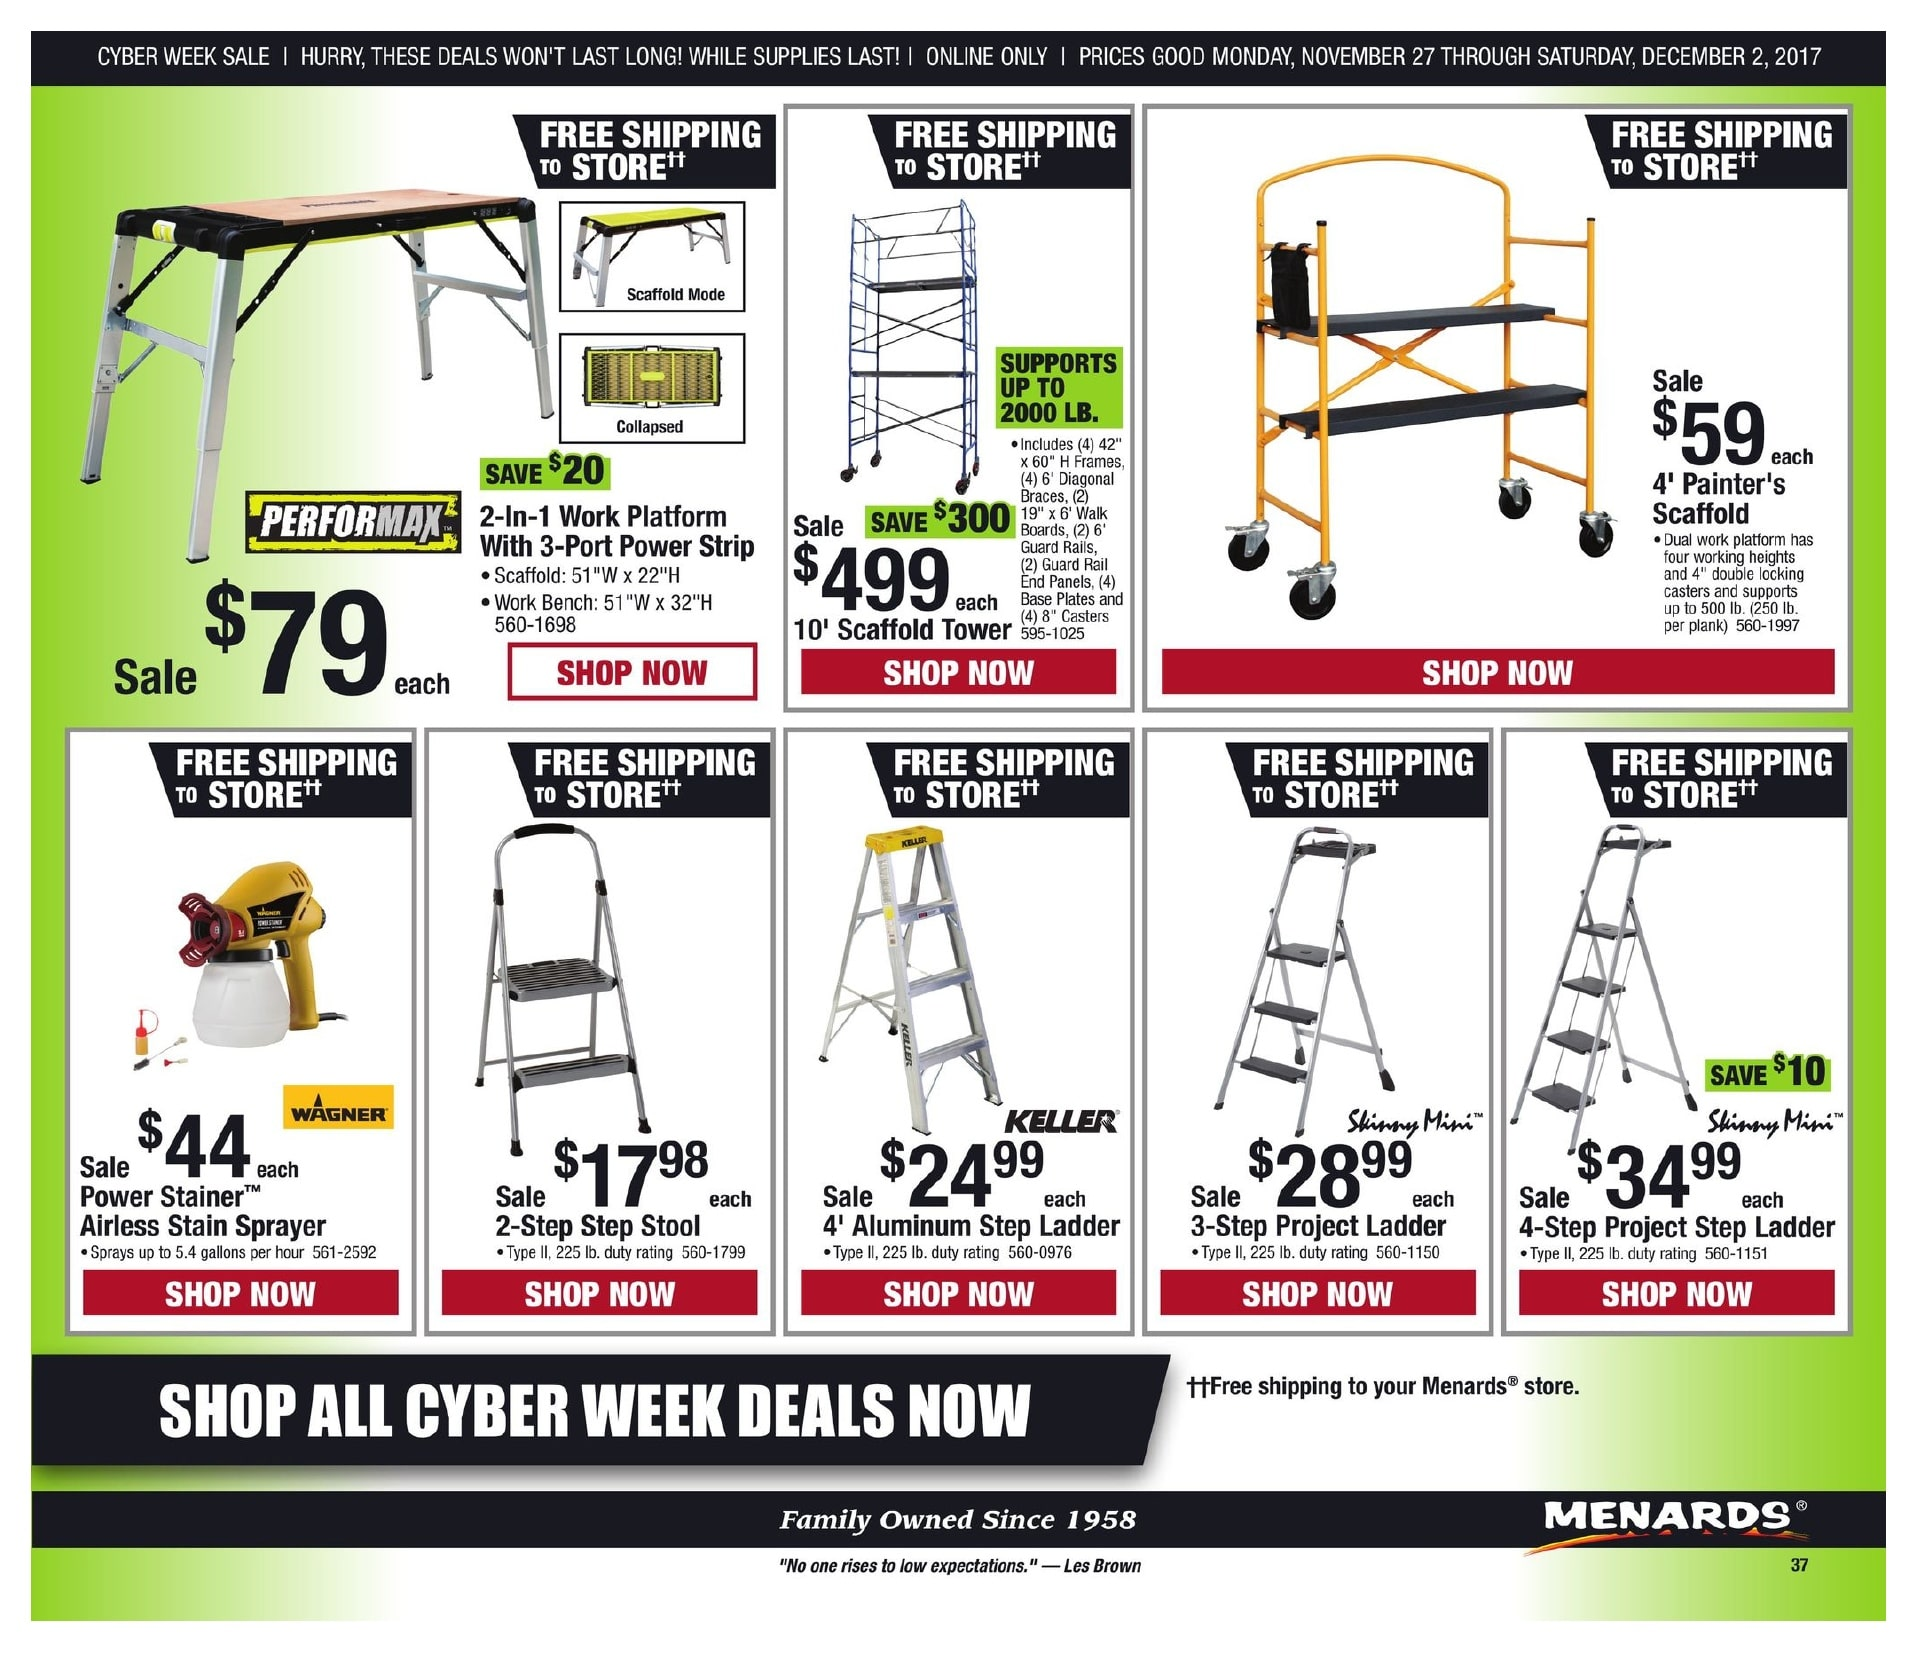 Menards Cyber Monday 2017 Ad